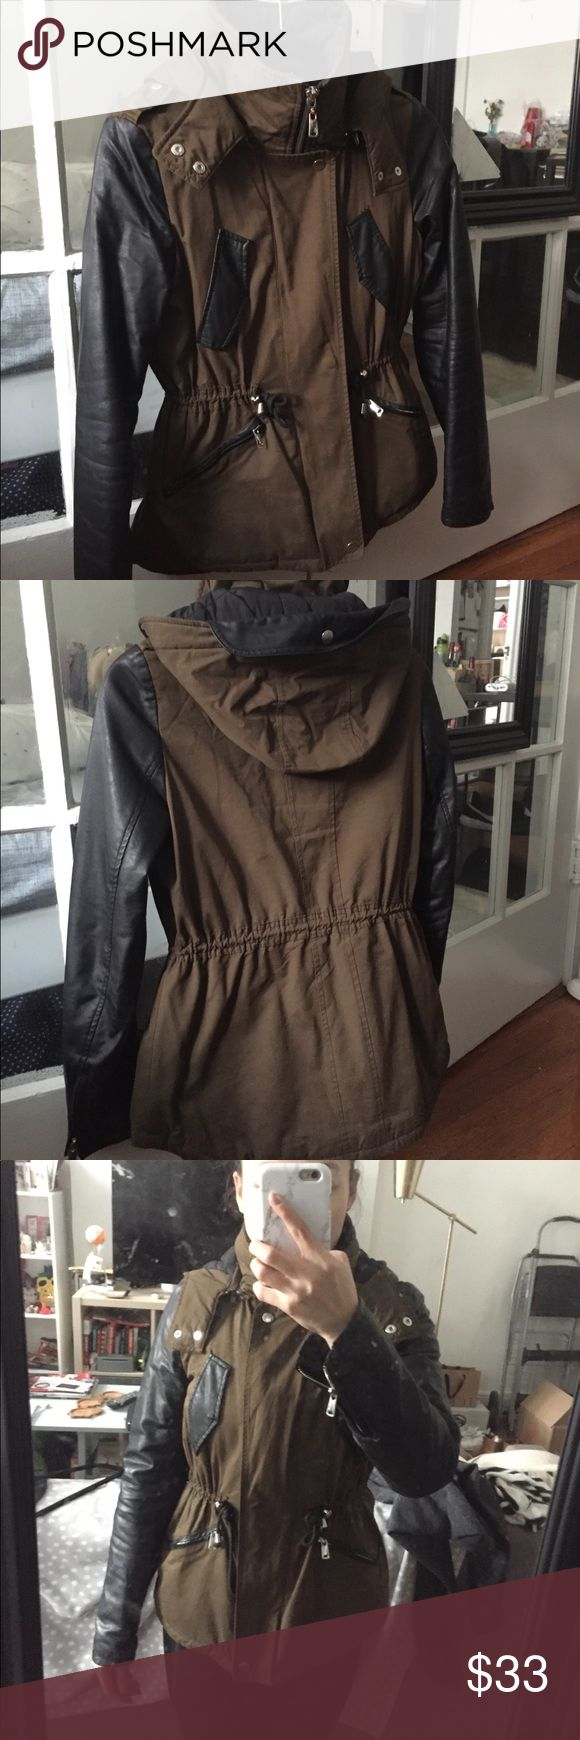 Zara Quilted Jacket with Leatherette Sleeves A transitional piece for spring or fall. Jacket is in very good condition and has been washed. Sleeves are faux leather. Collar is lined with wool. Zara Jackets & Coats Utility Jackets